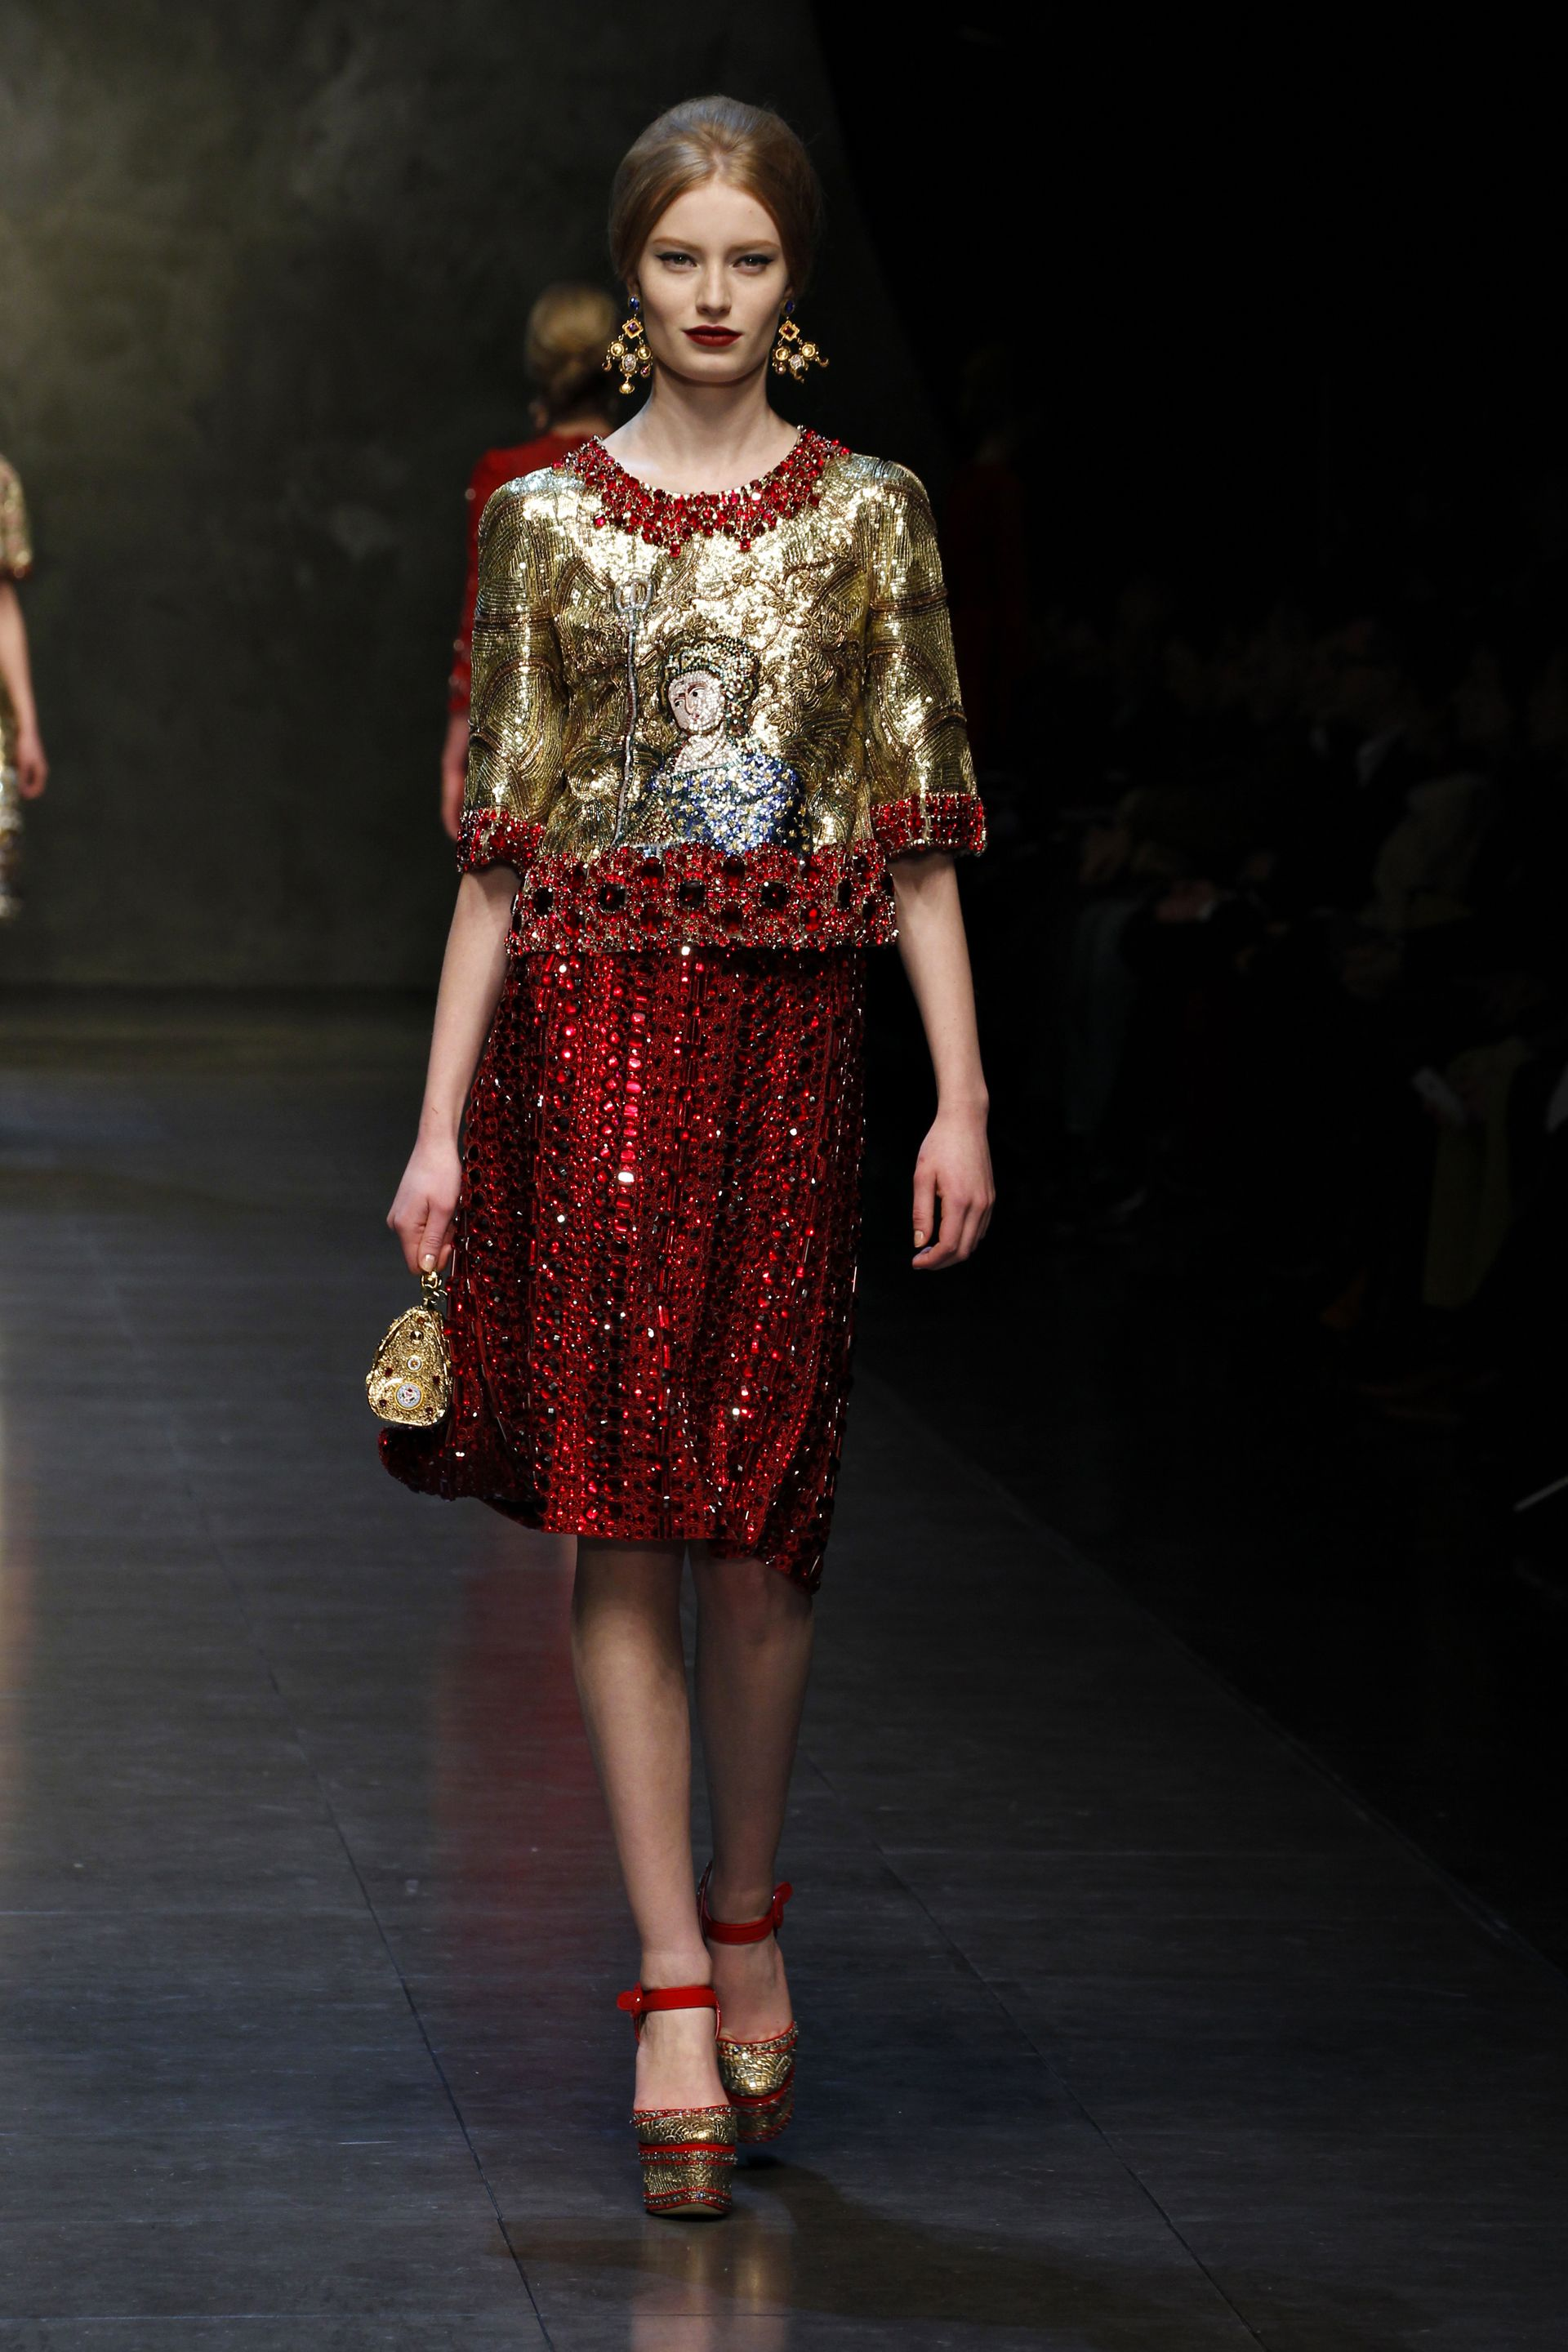 Dolce & Gabbana Women Fashion Show – Fall Winter 2014 Collection